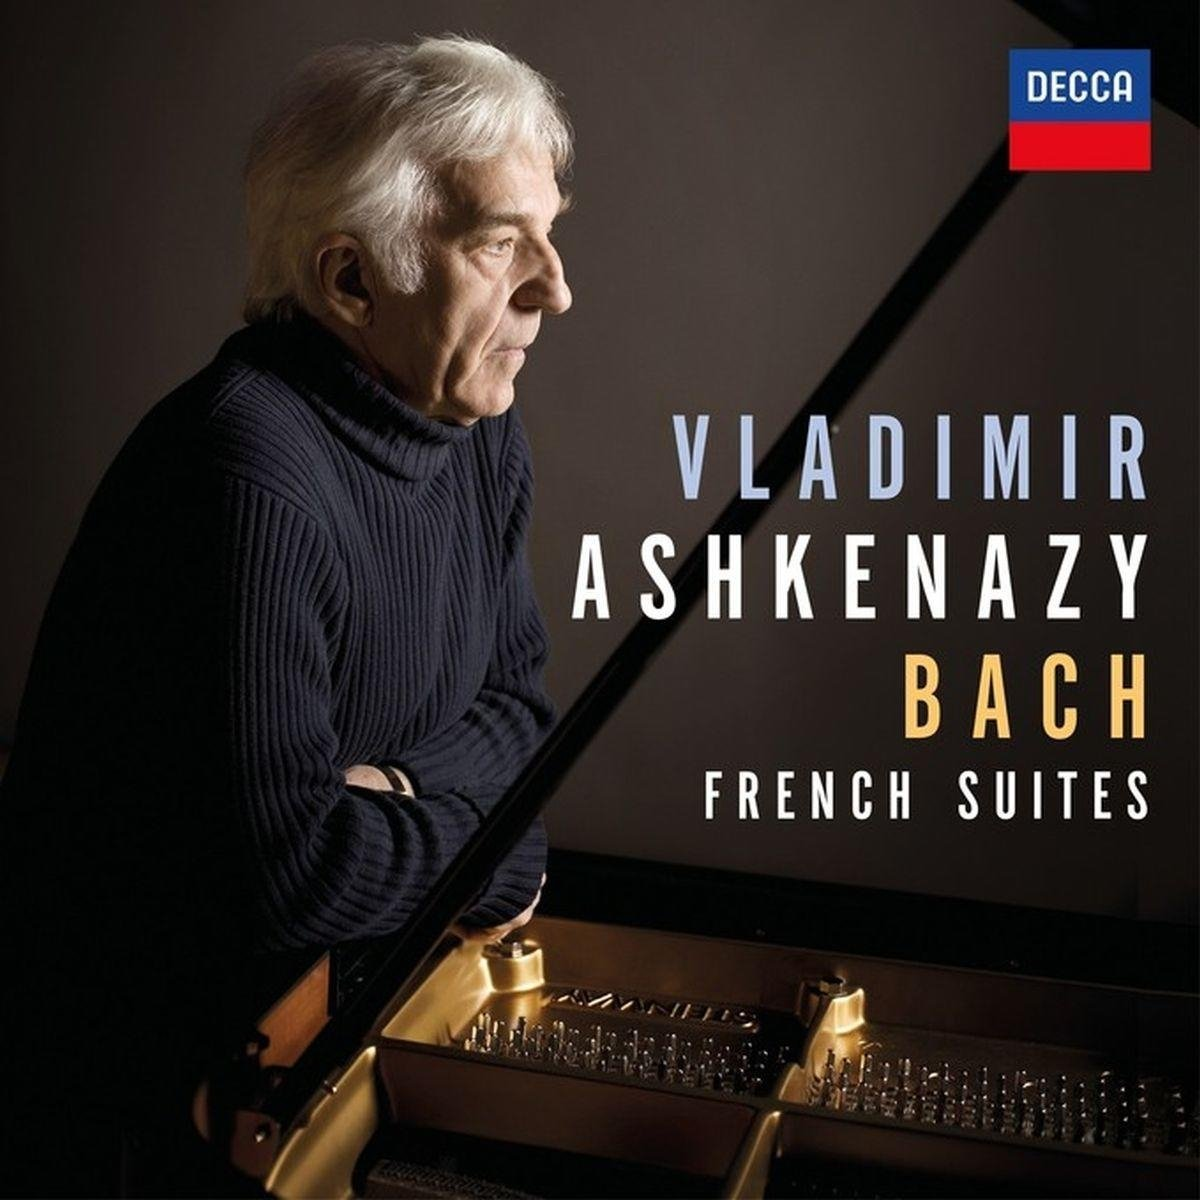 Bach French Suites - Vladimir Ashkenazy